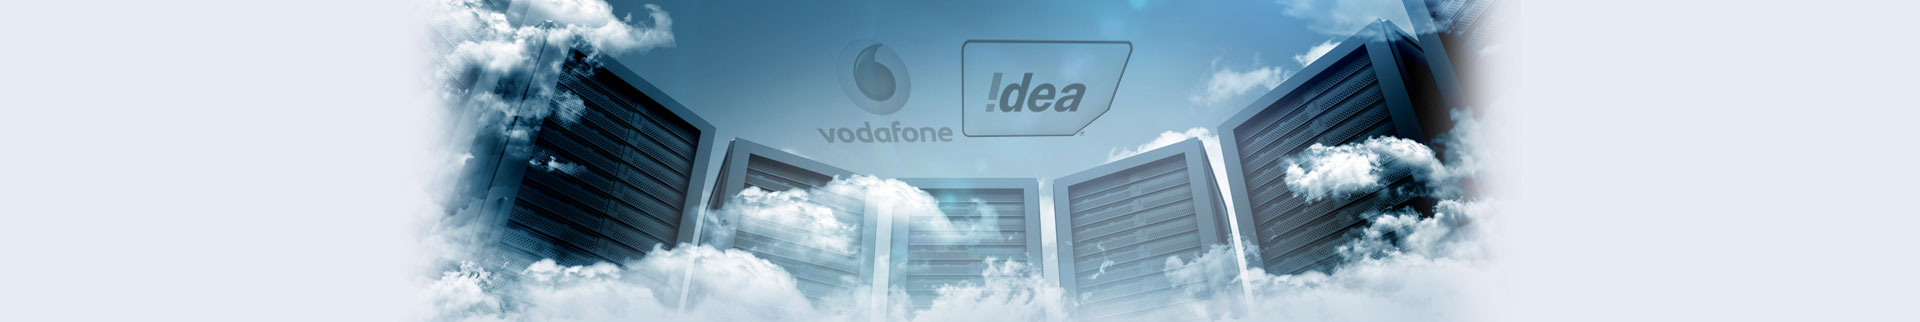 Vodafone Idea's universal cloud